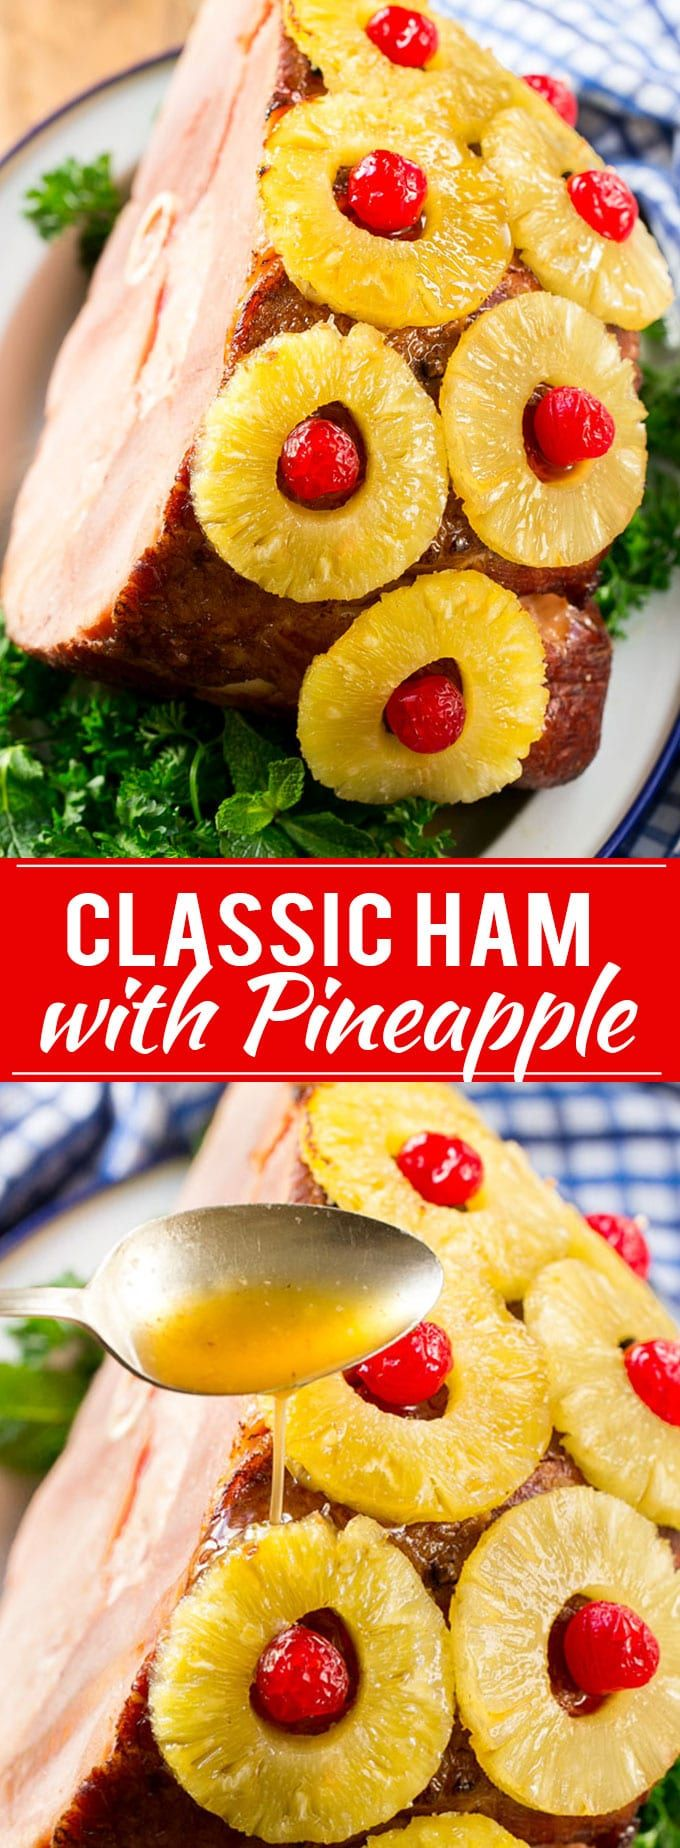 Ham with Pineapple and Cherries